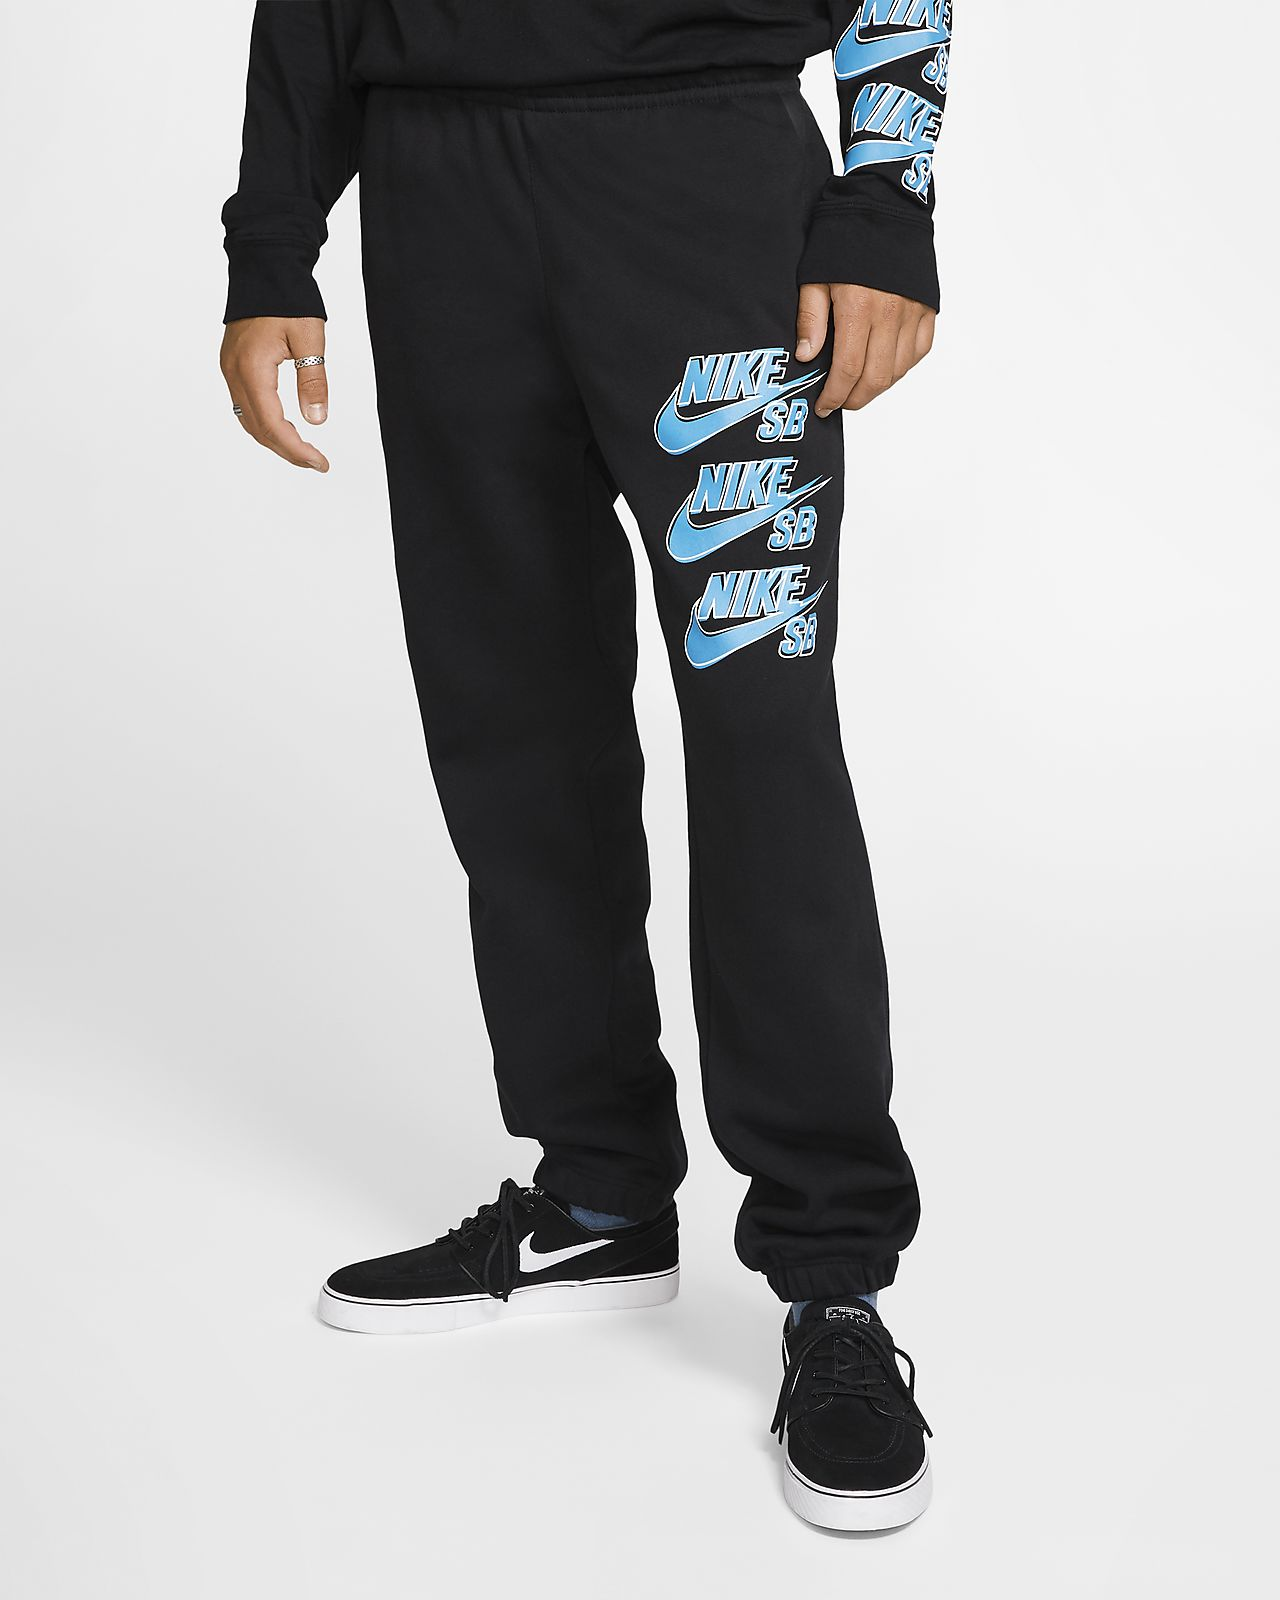 Nike SB Icon Pantalons de teixit Fleece de skateboard - Home